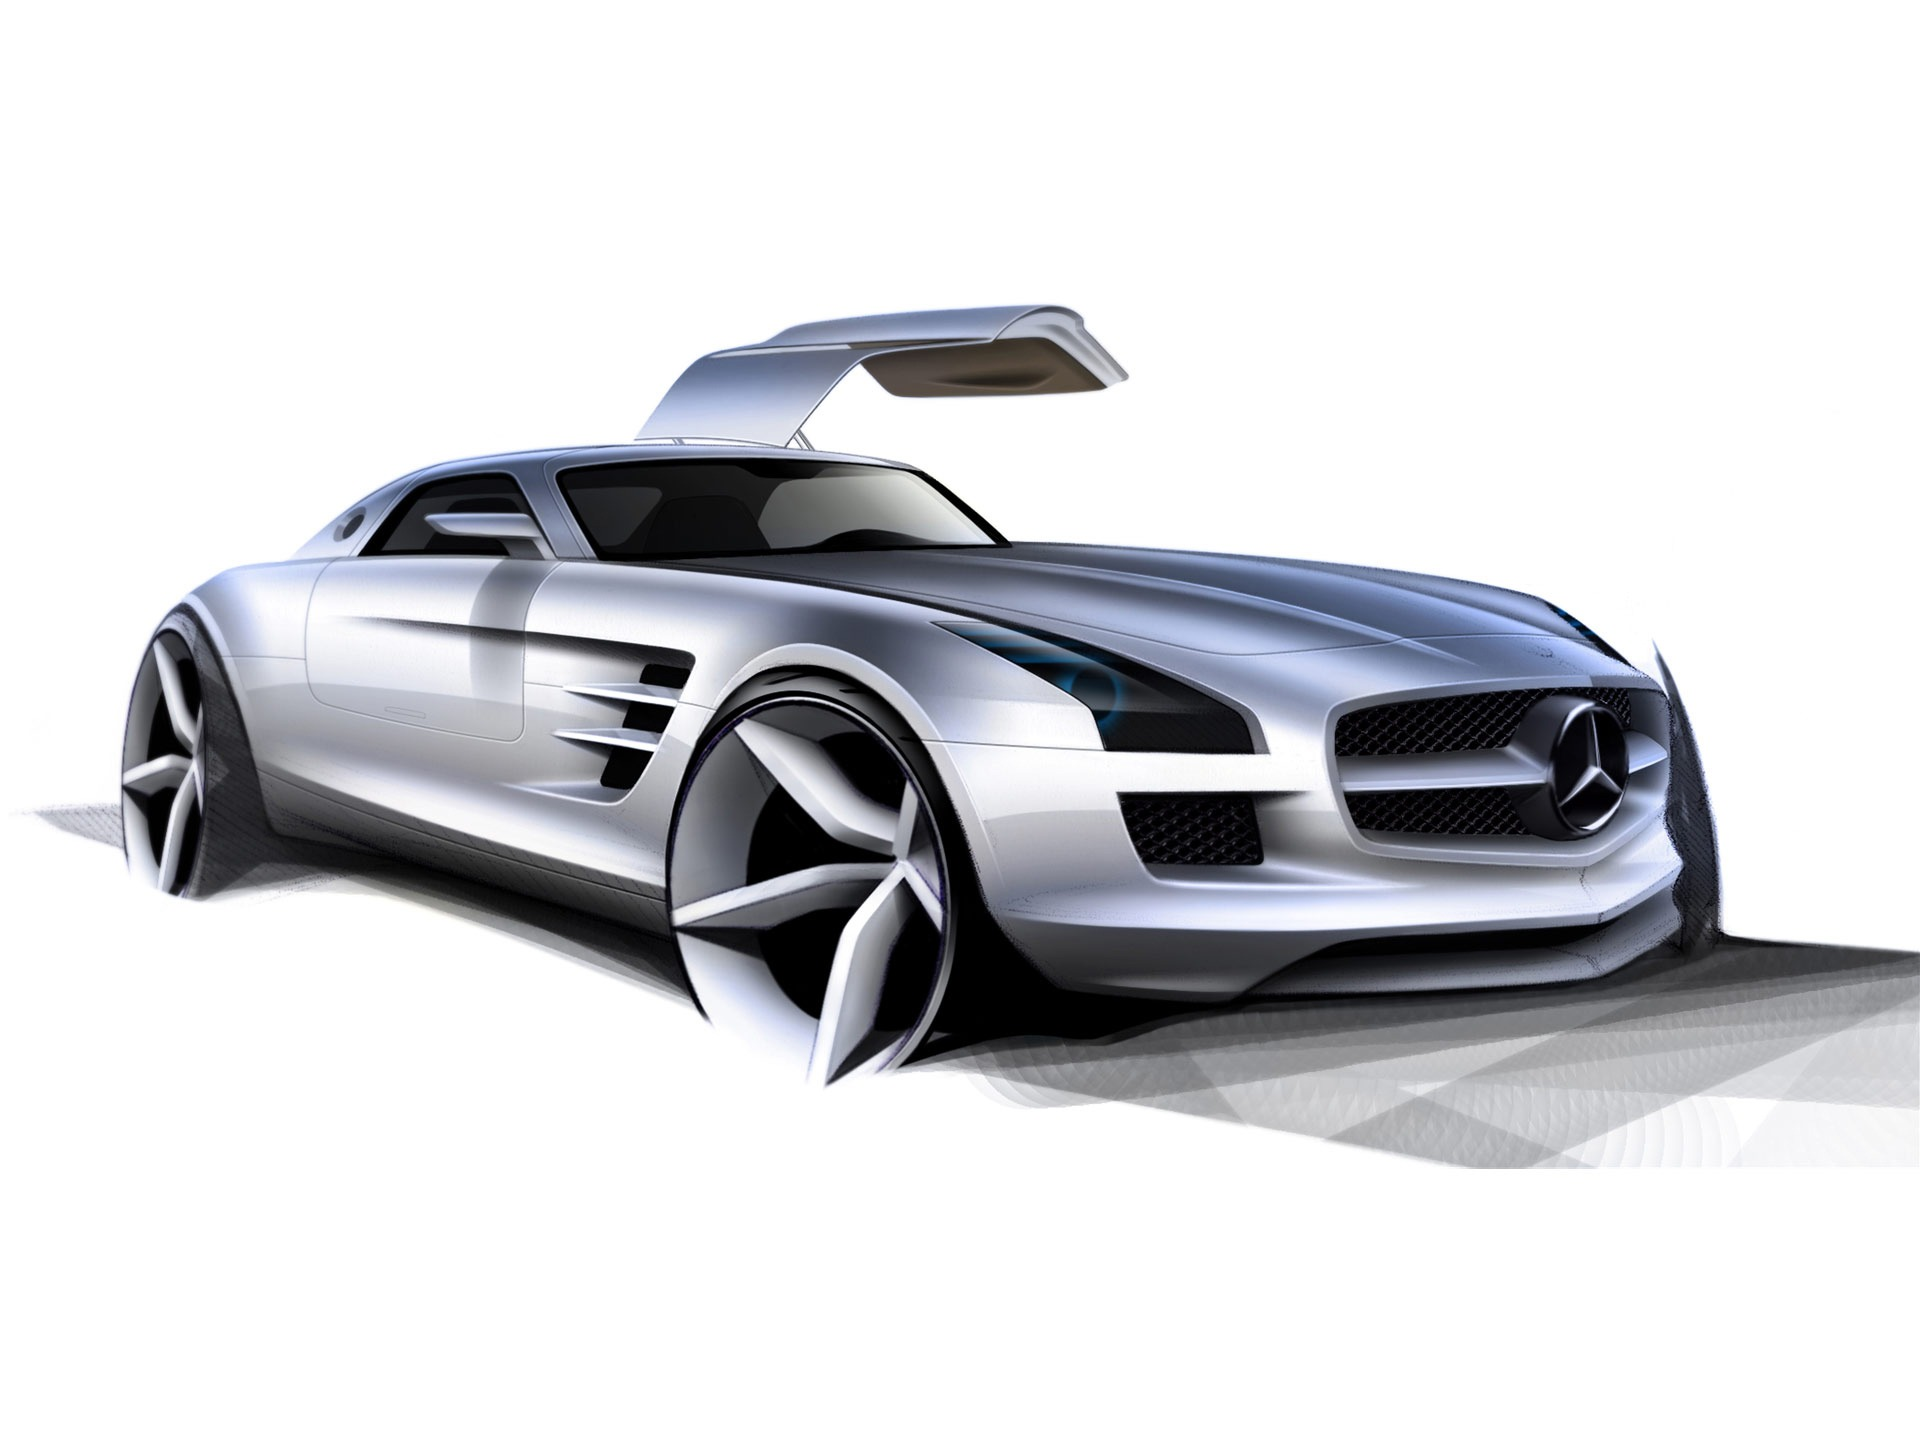 Mercedes benz sls amg wallpaper concept cars wallpapers in for Cars of mercedes benz